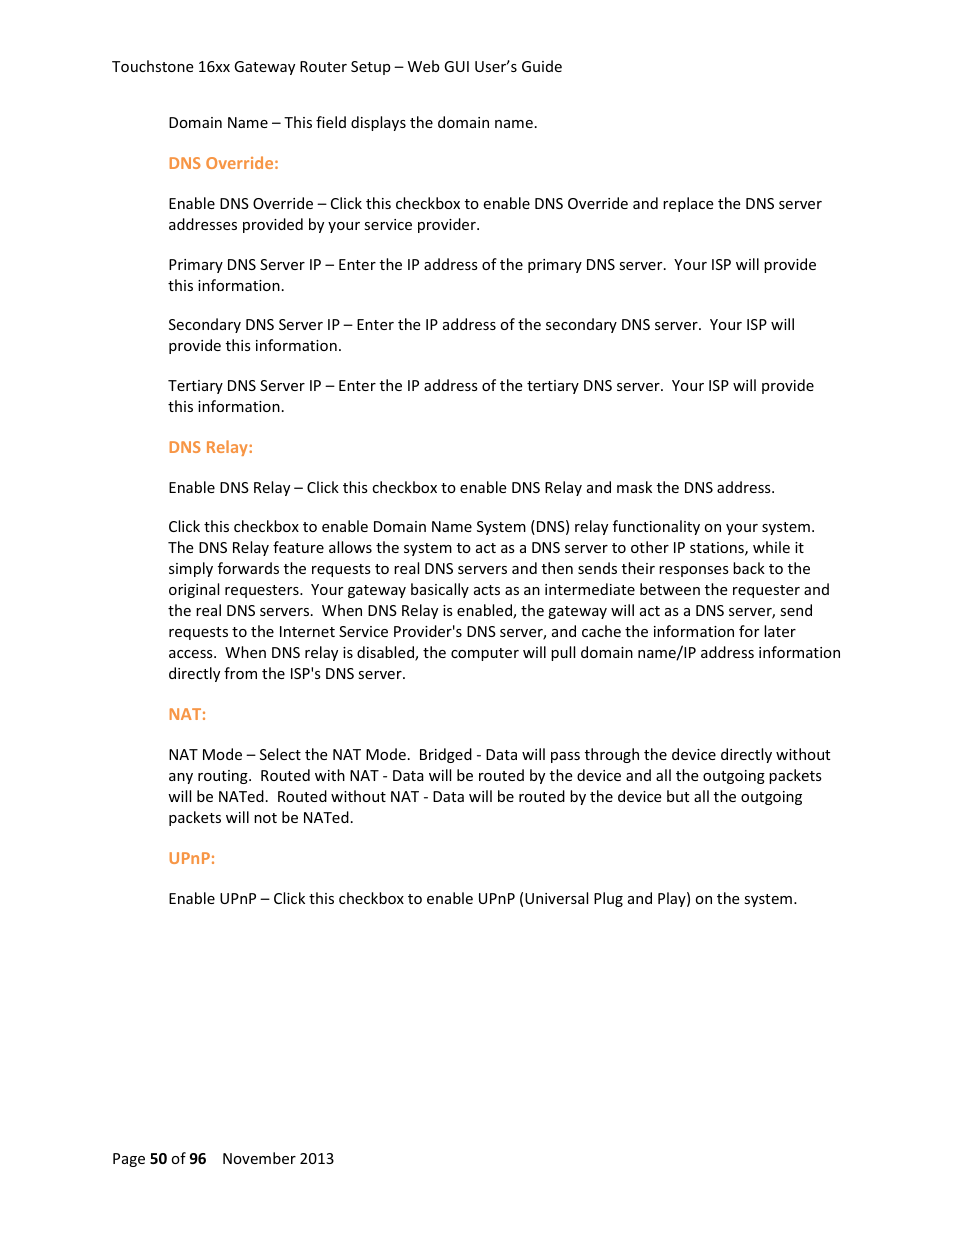 ARRIS TG1672G-NA Web GUI User Guide User Manual | Page 50 / 96